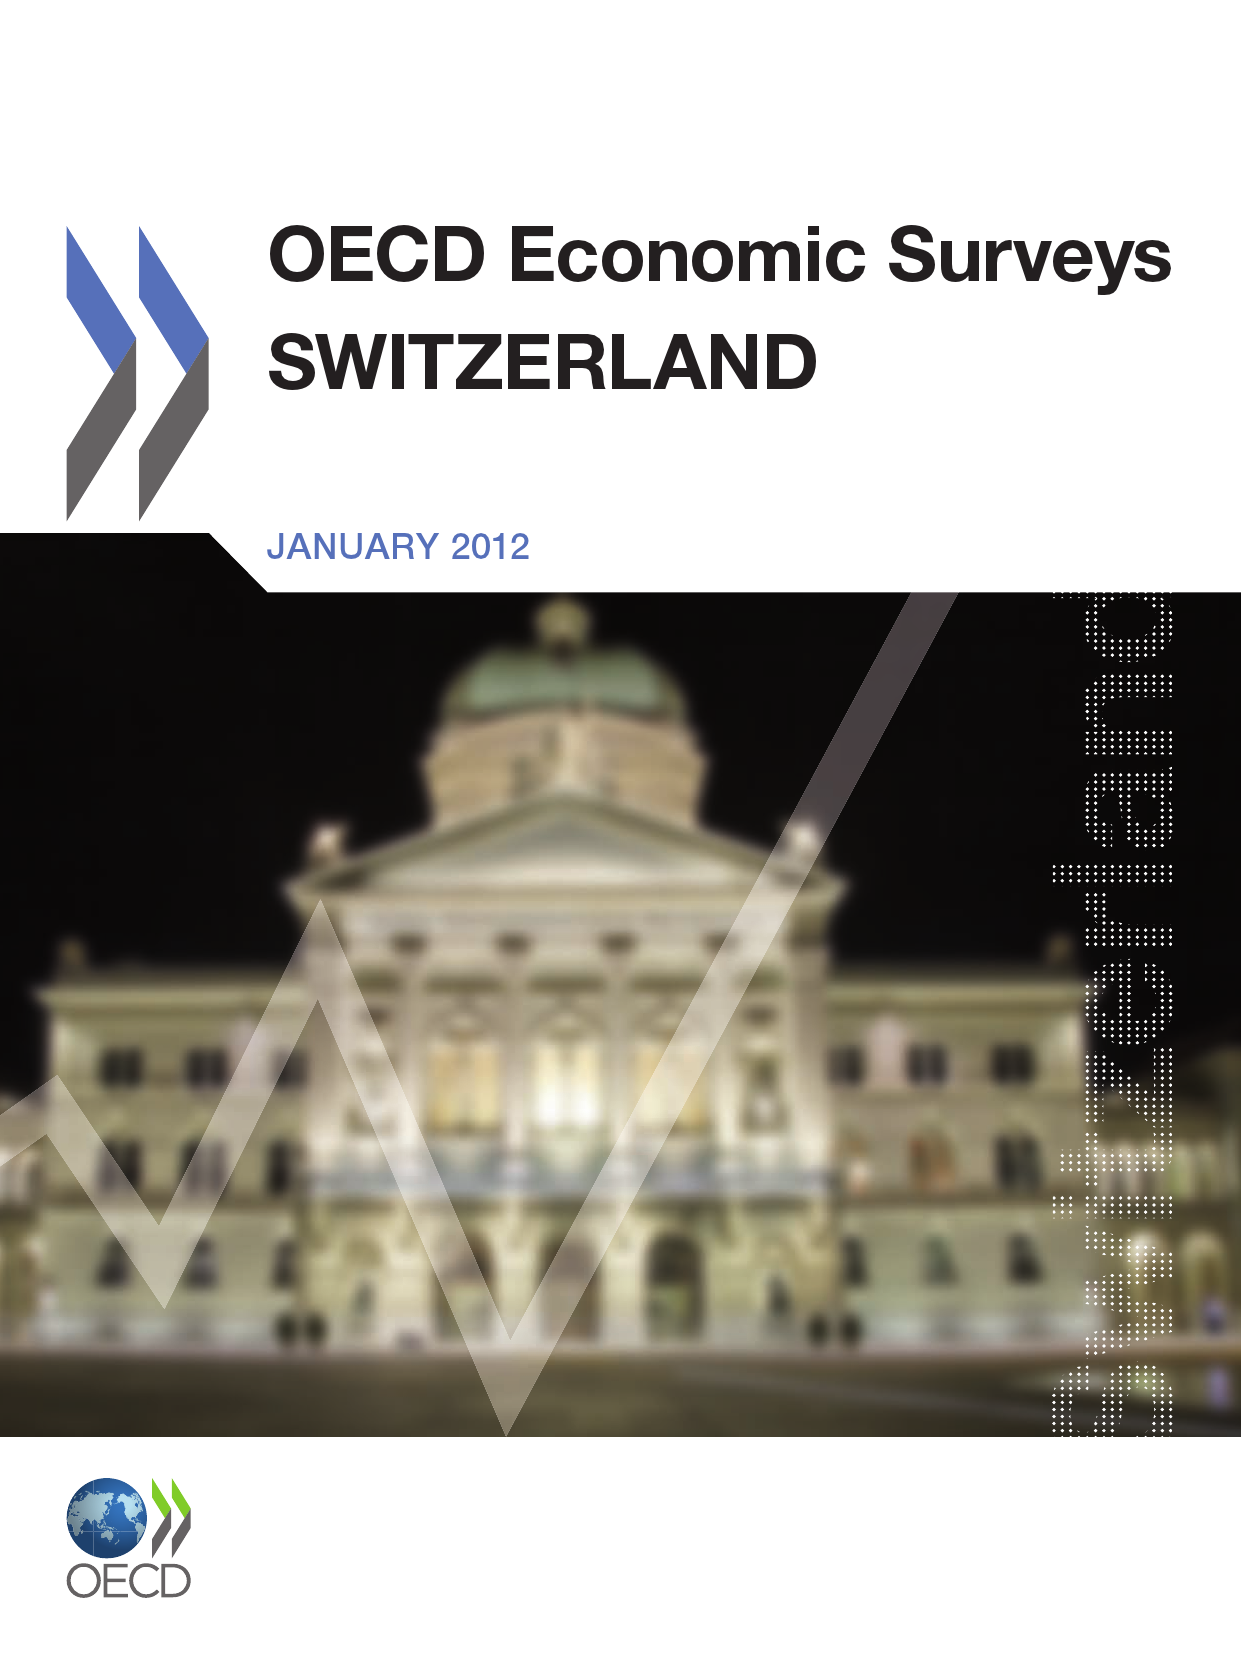 OECD Economic Surveys: Switzerland 2011